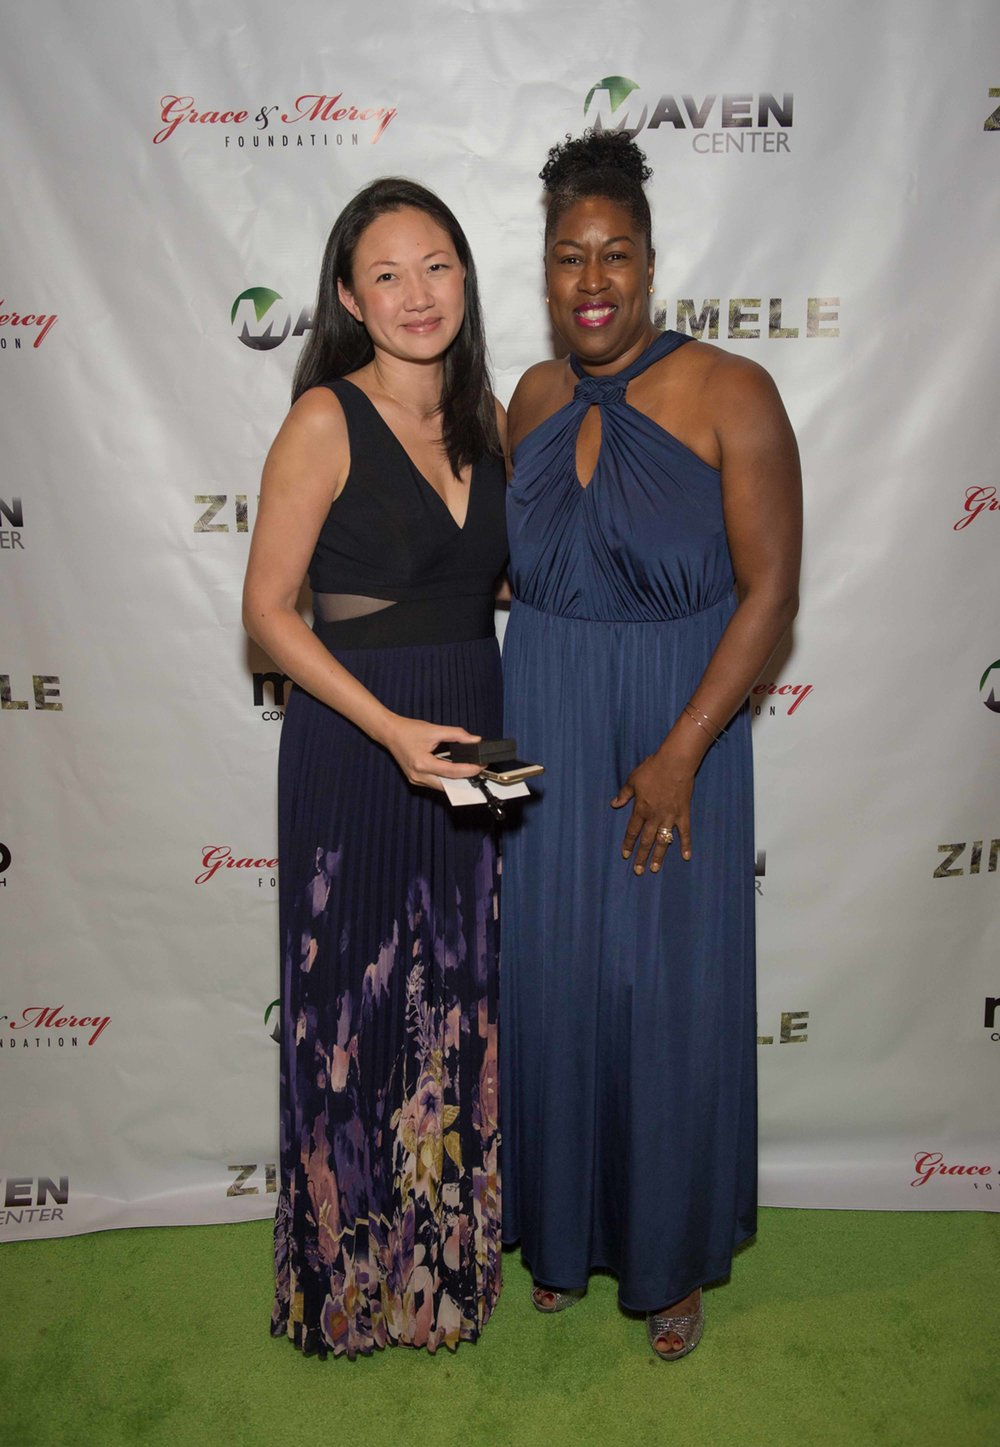 2017-10-21 Zimele USA 6th Annual Gala - Maritime Parc - Jersey City NJ_0064.jpg